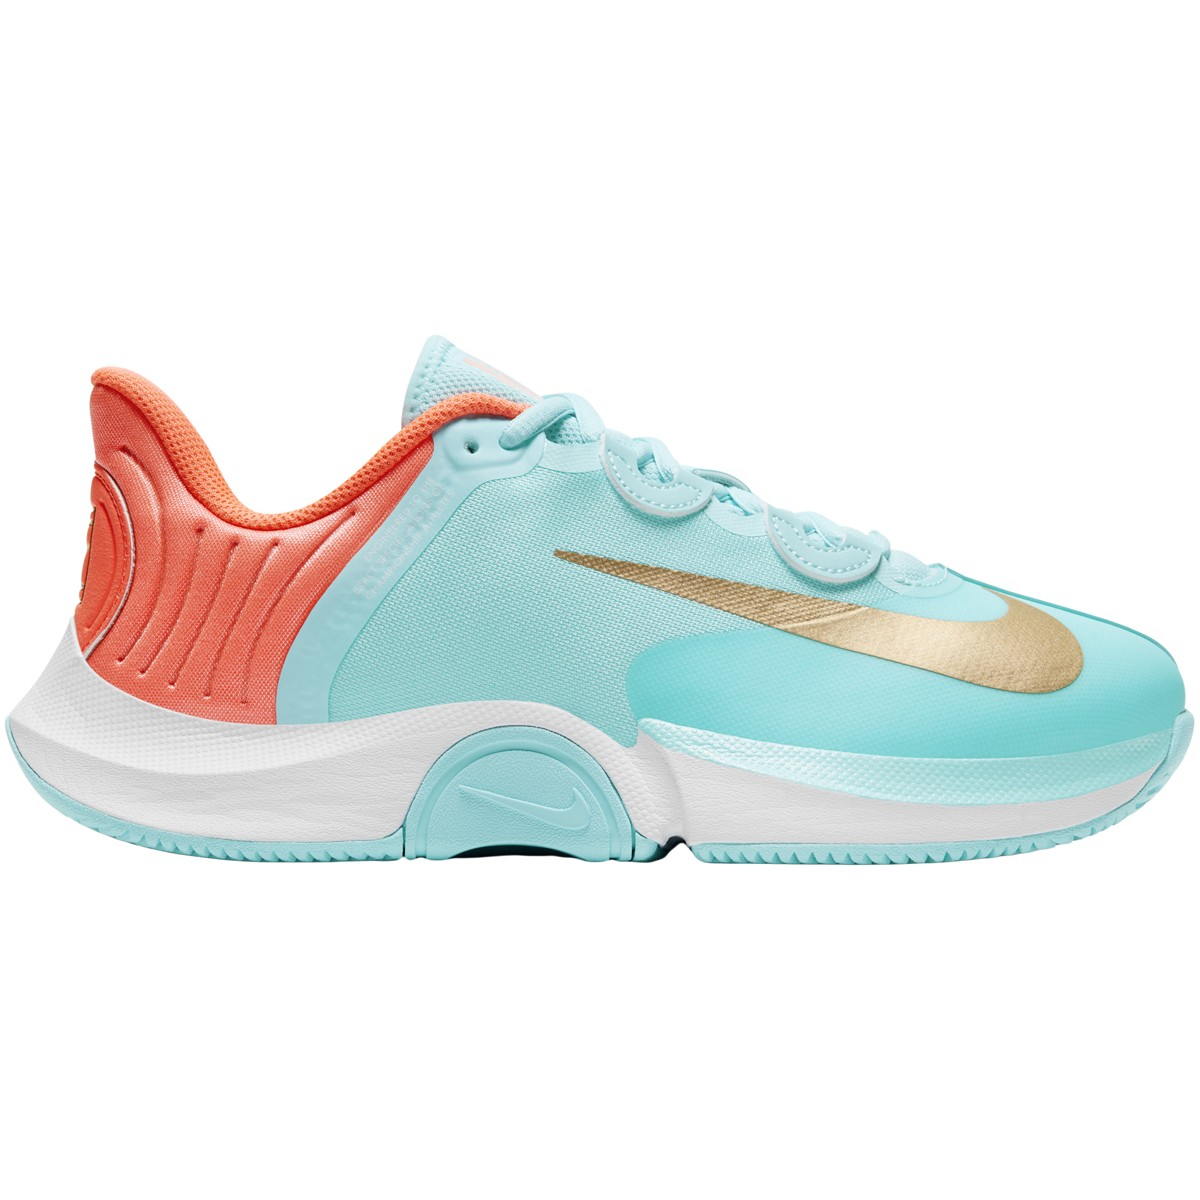 Chaussures Nike Femme Air Zoom GP Turbo Indian Wells/Miami Toutes ...